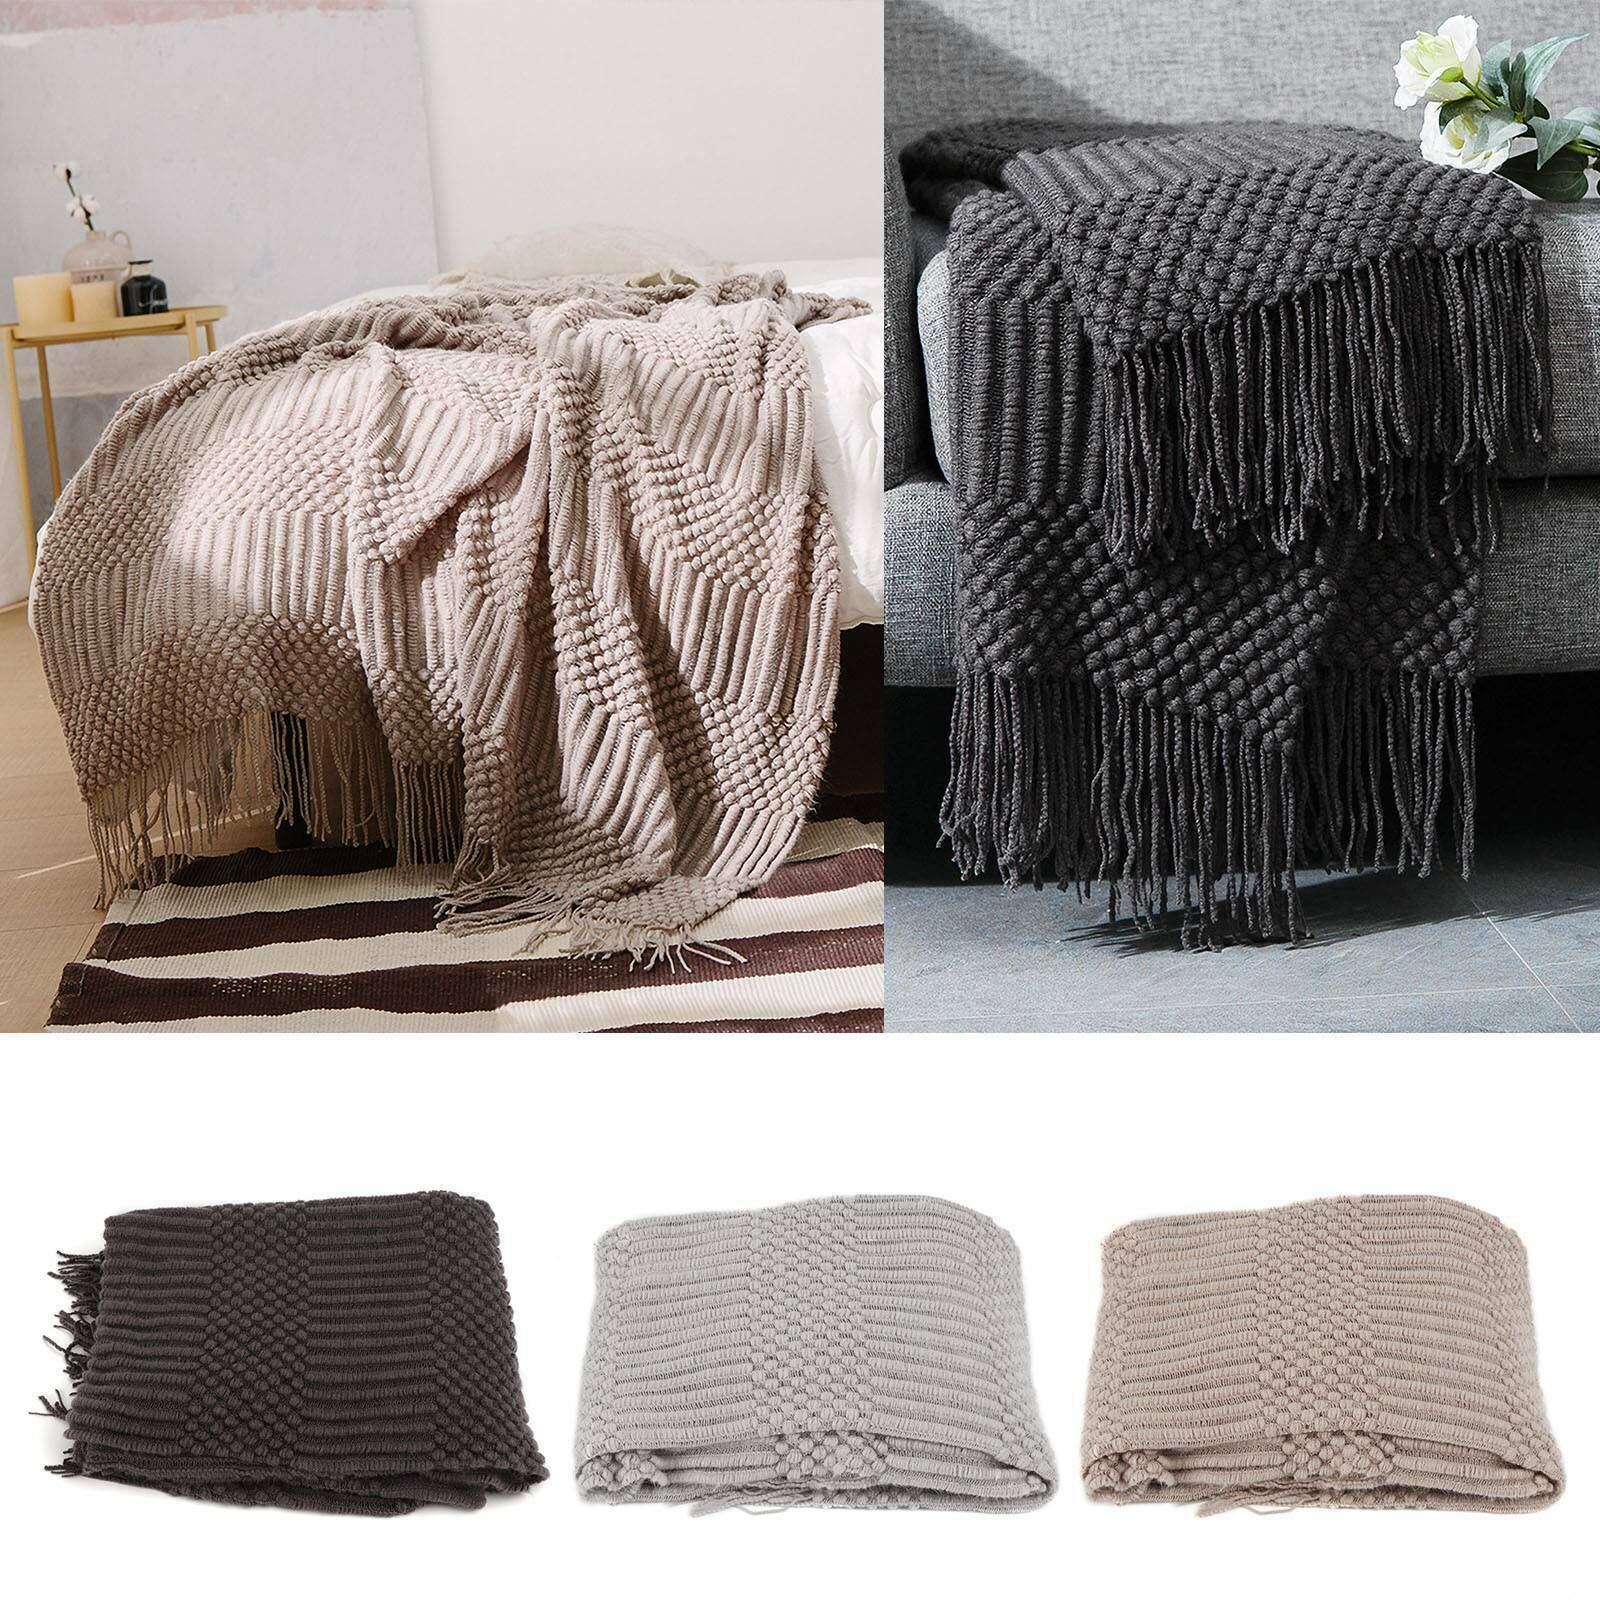 Uk Home Luxury Knitted Blankets Tassel Throws Large Sofa Couch Bed Fringed Cover Ebay